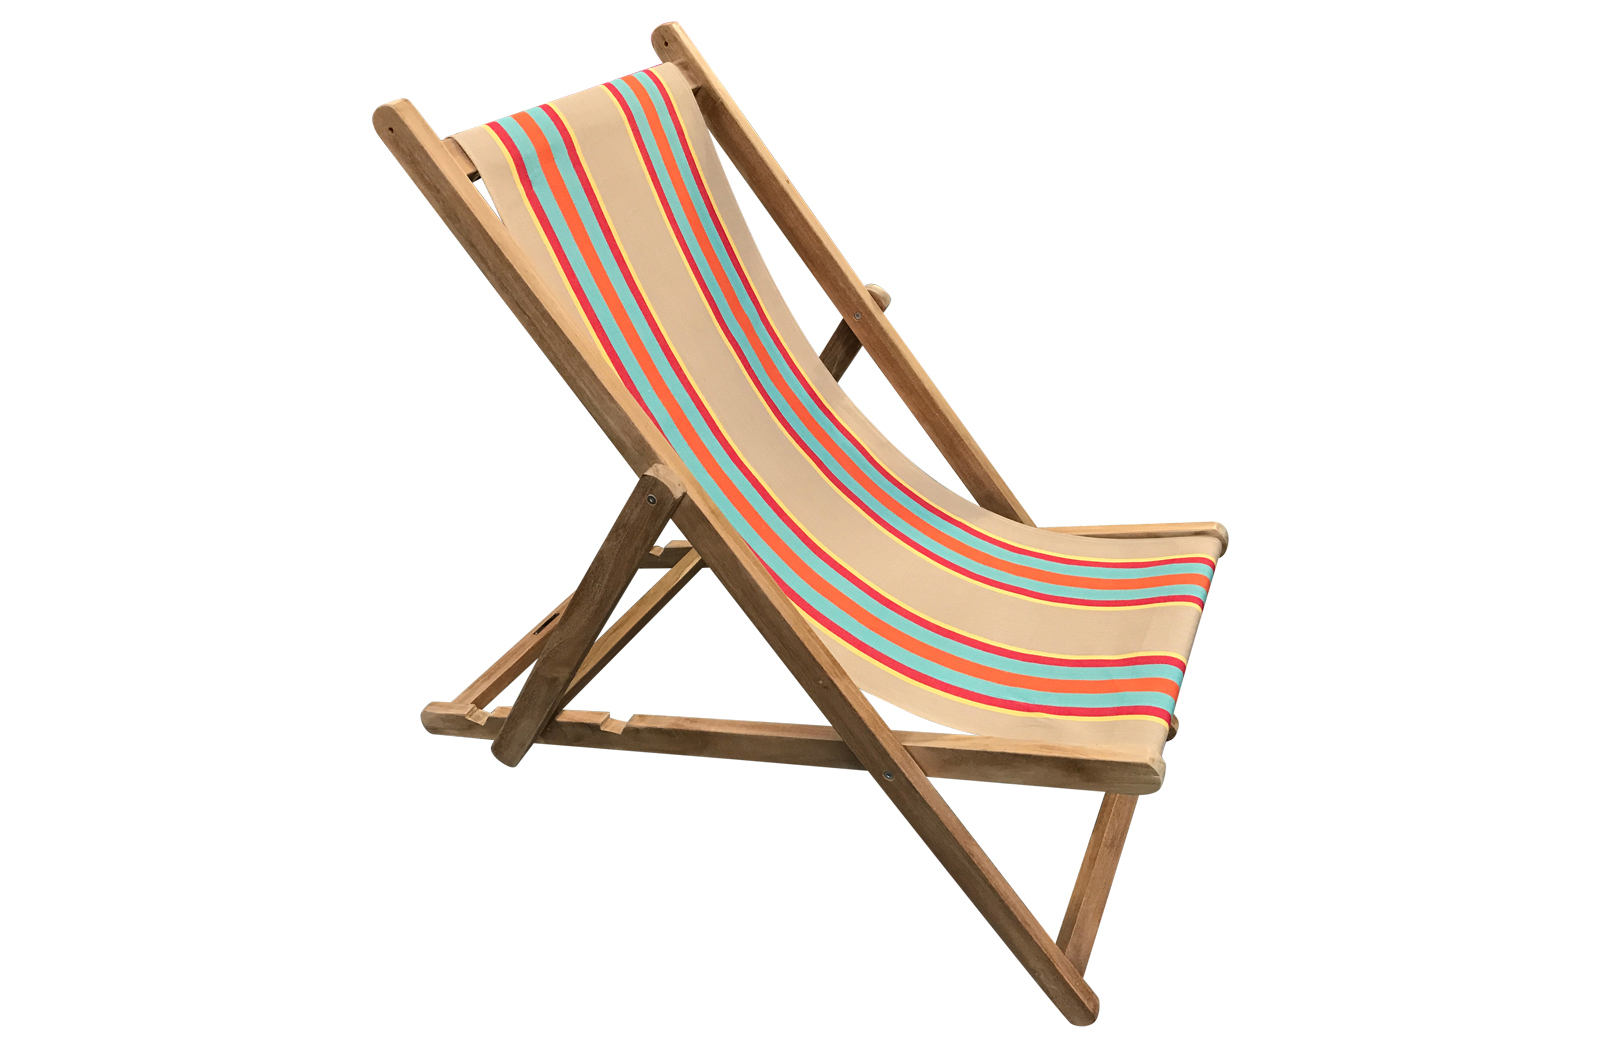 Deckchair fawn, terracotta, turquoise  stripes